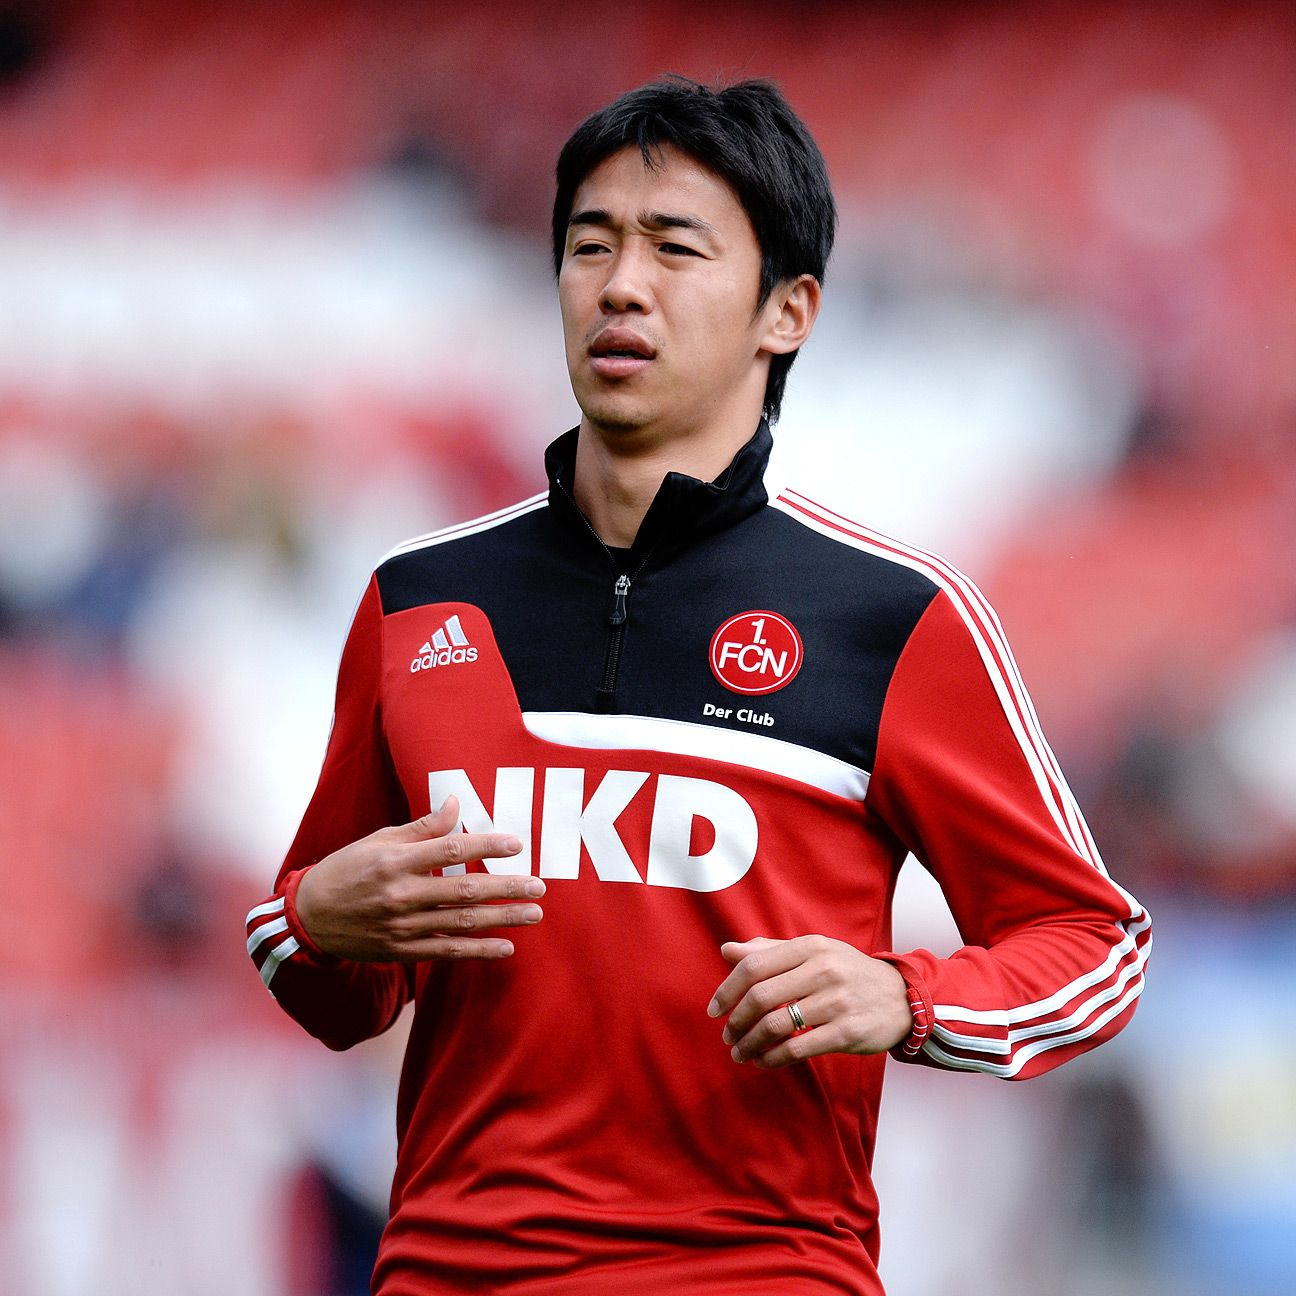 Kiyotake is versatile but inconsistent for club and country.